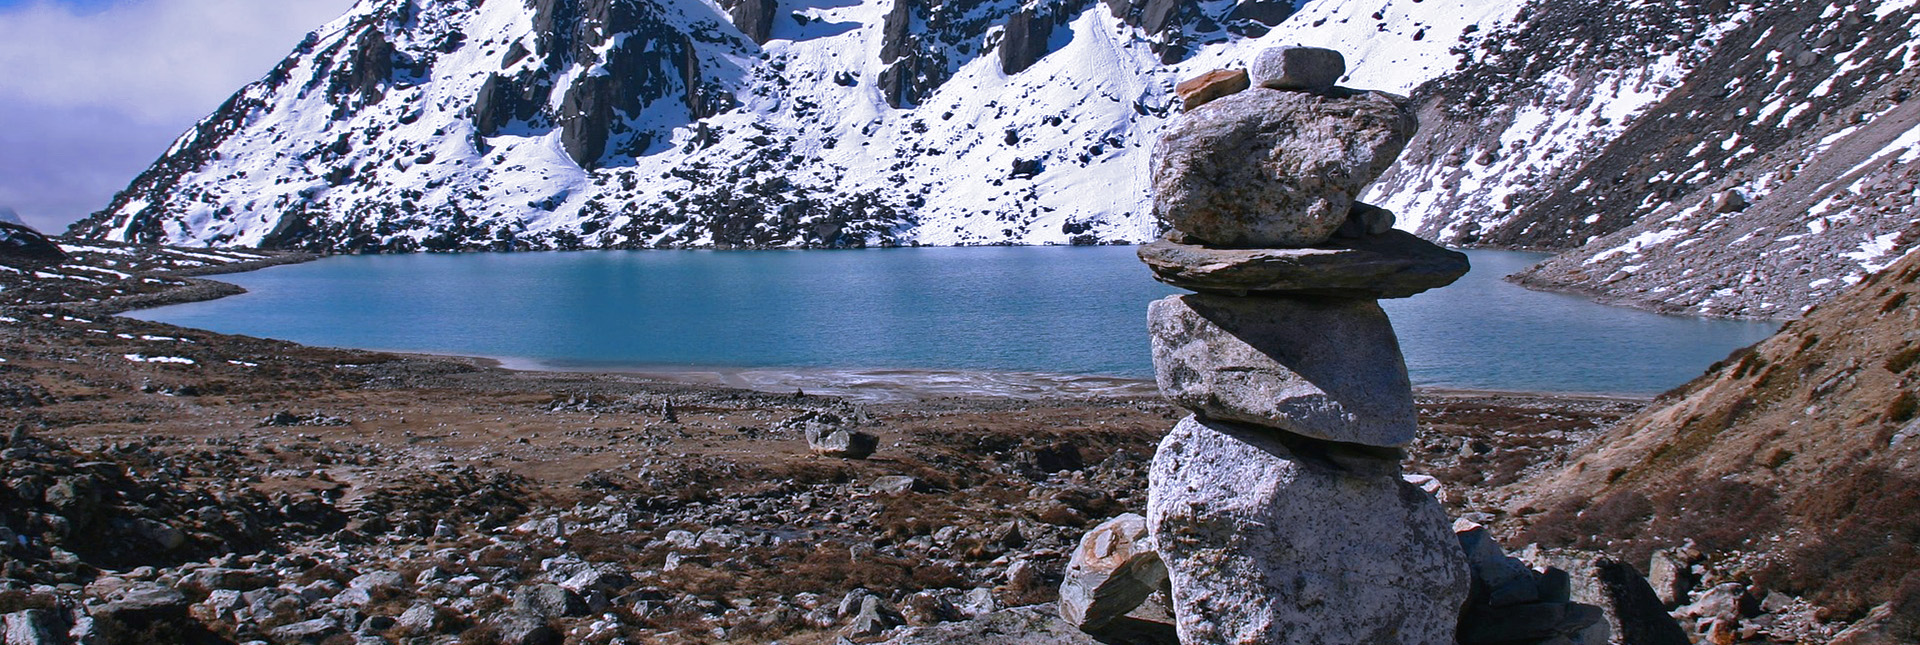 View of Gokyo lake